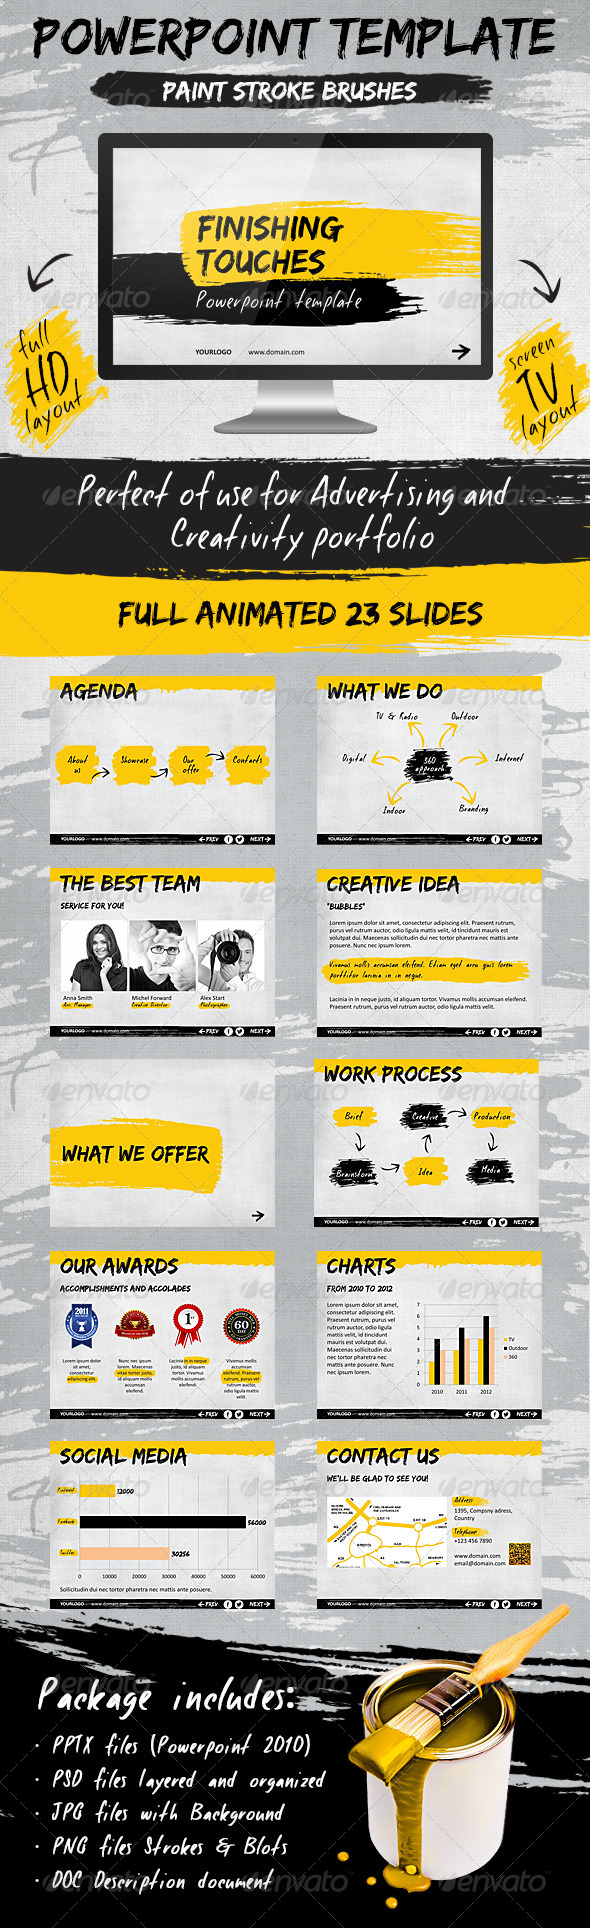 GraphicRiver Finishing Touches Template 2616107